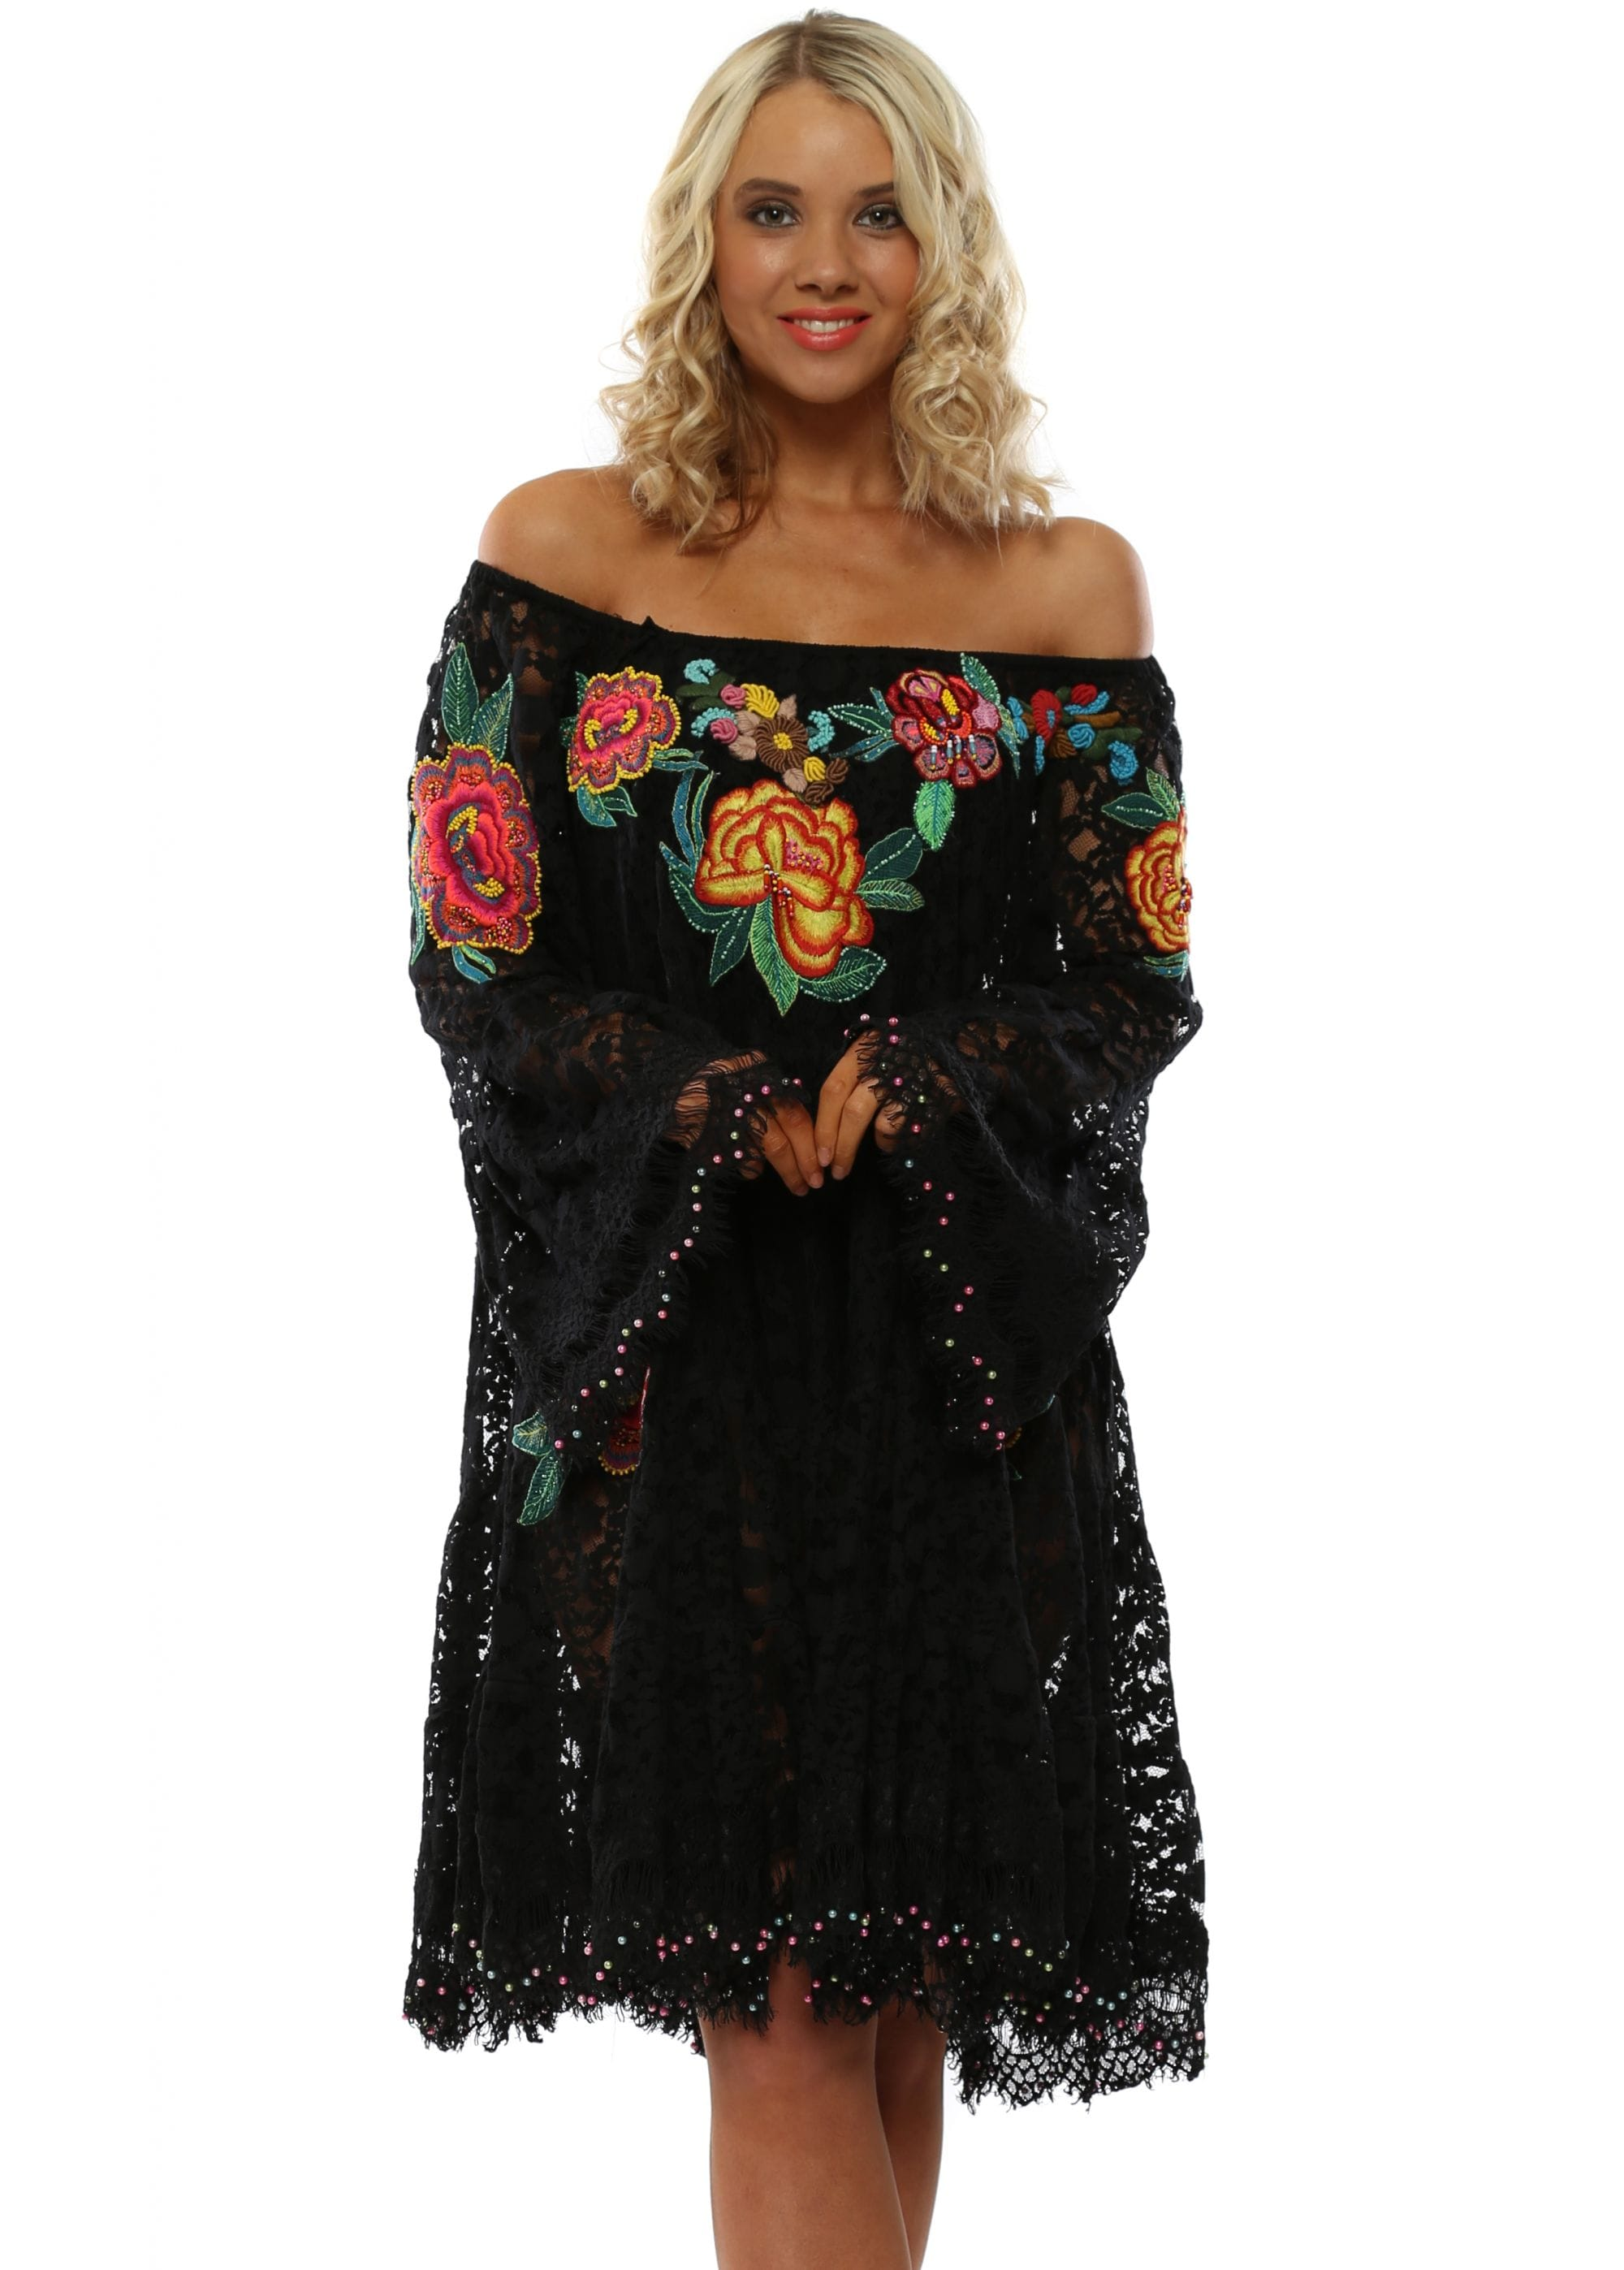 d2f3d4f8d83f Black Lace Floral Embellished Bardot Dress